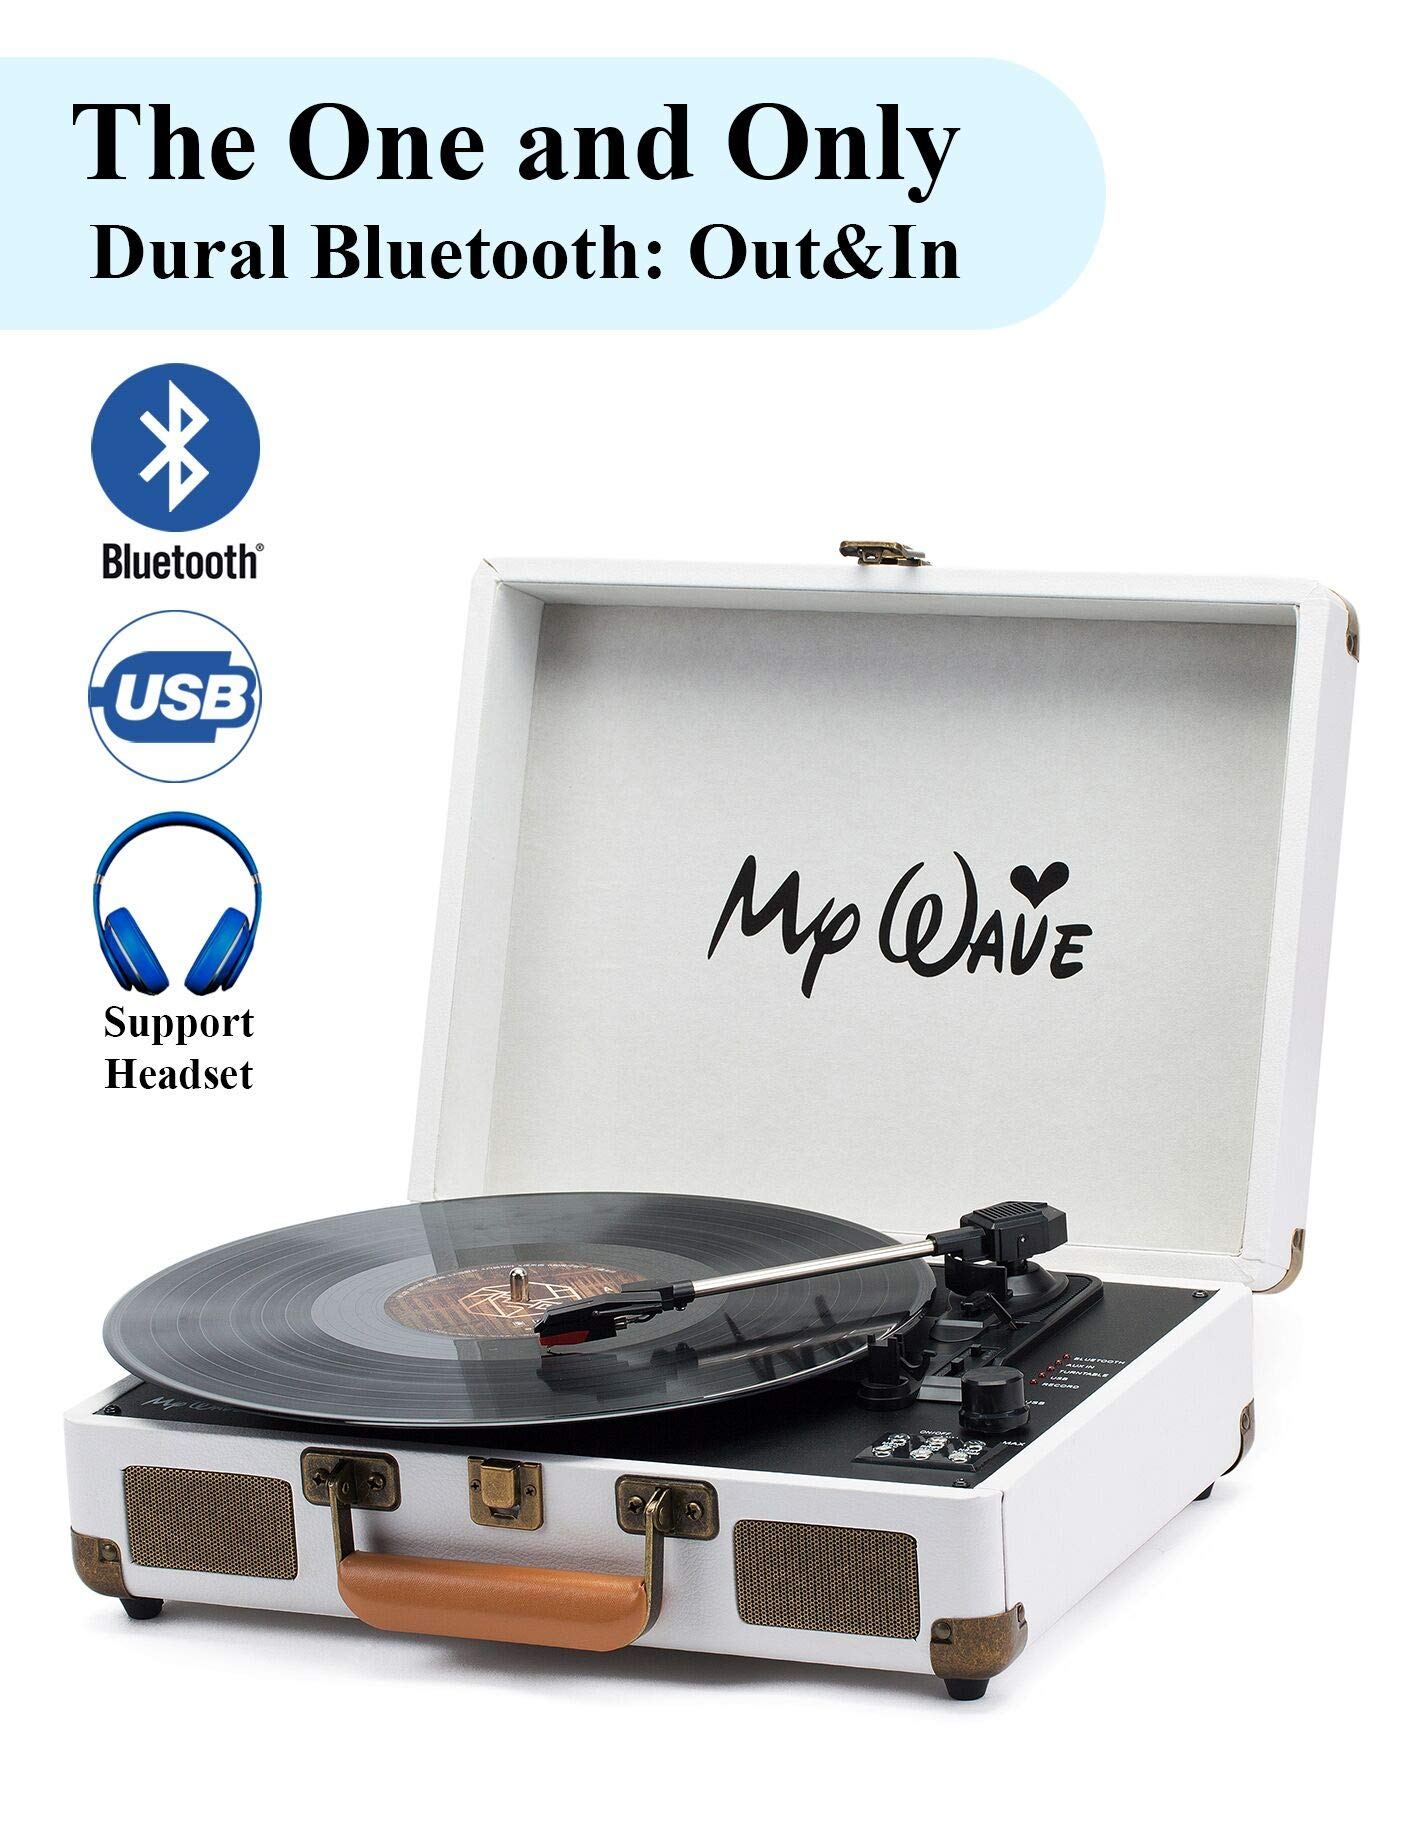 MyWave Portable Bluetooth Wireless Turntable with Built-in Stereo Speakers, 3-Speed,Vinyl-to-MP3 Recording,Both Bluetooth Transmit Out & Receive in,AUX in,RCA Out,Headphone Jack,White (White) by MyWave